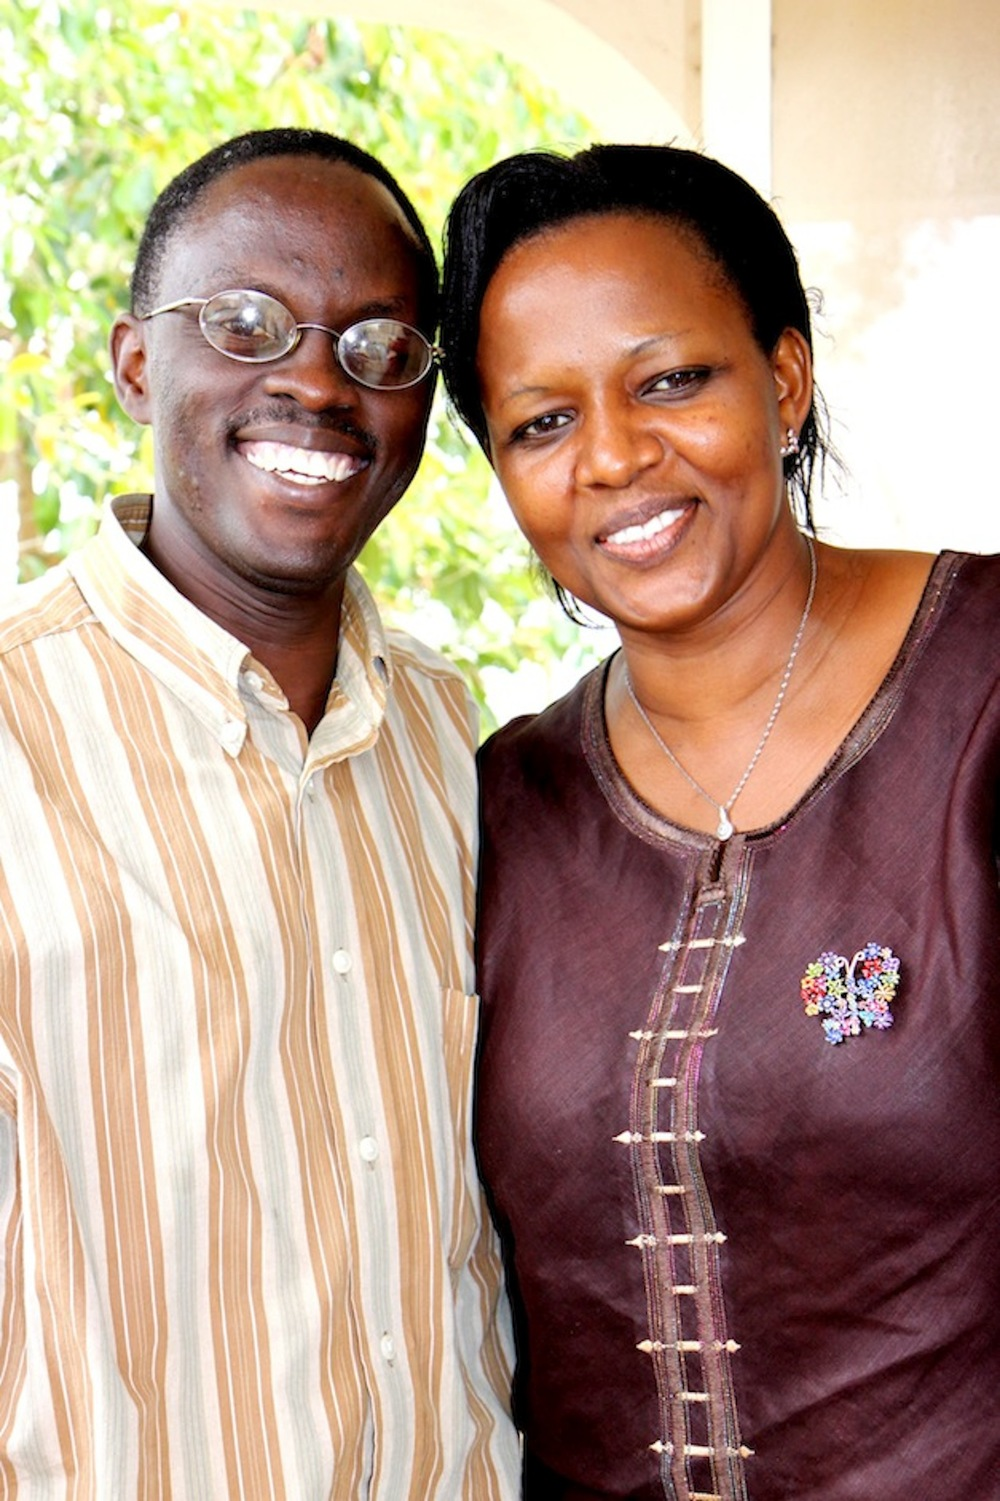 Pastors Peter and Phoebe Sozi